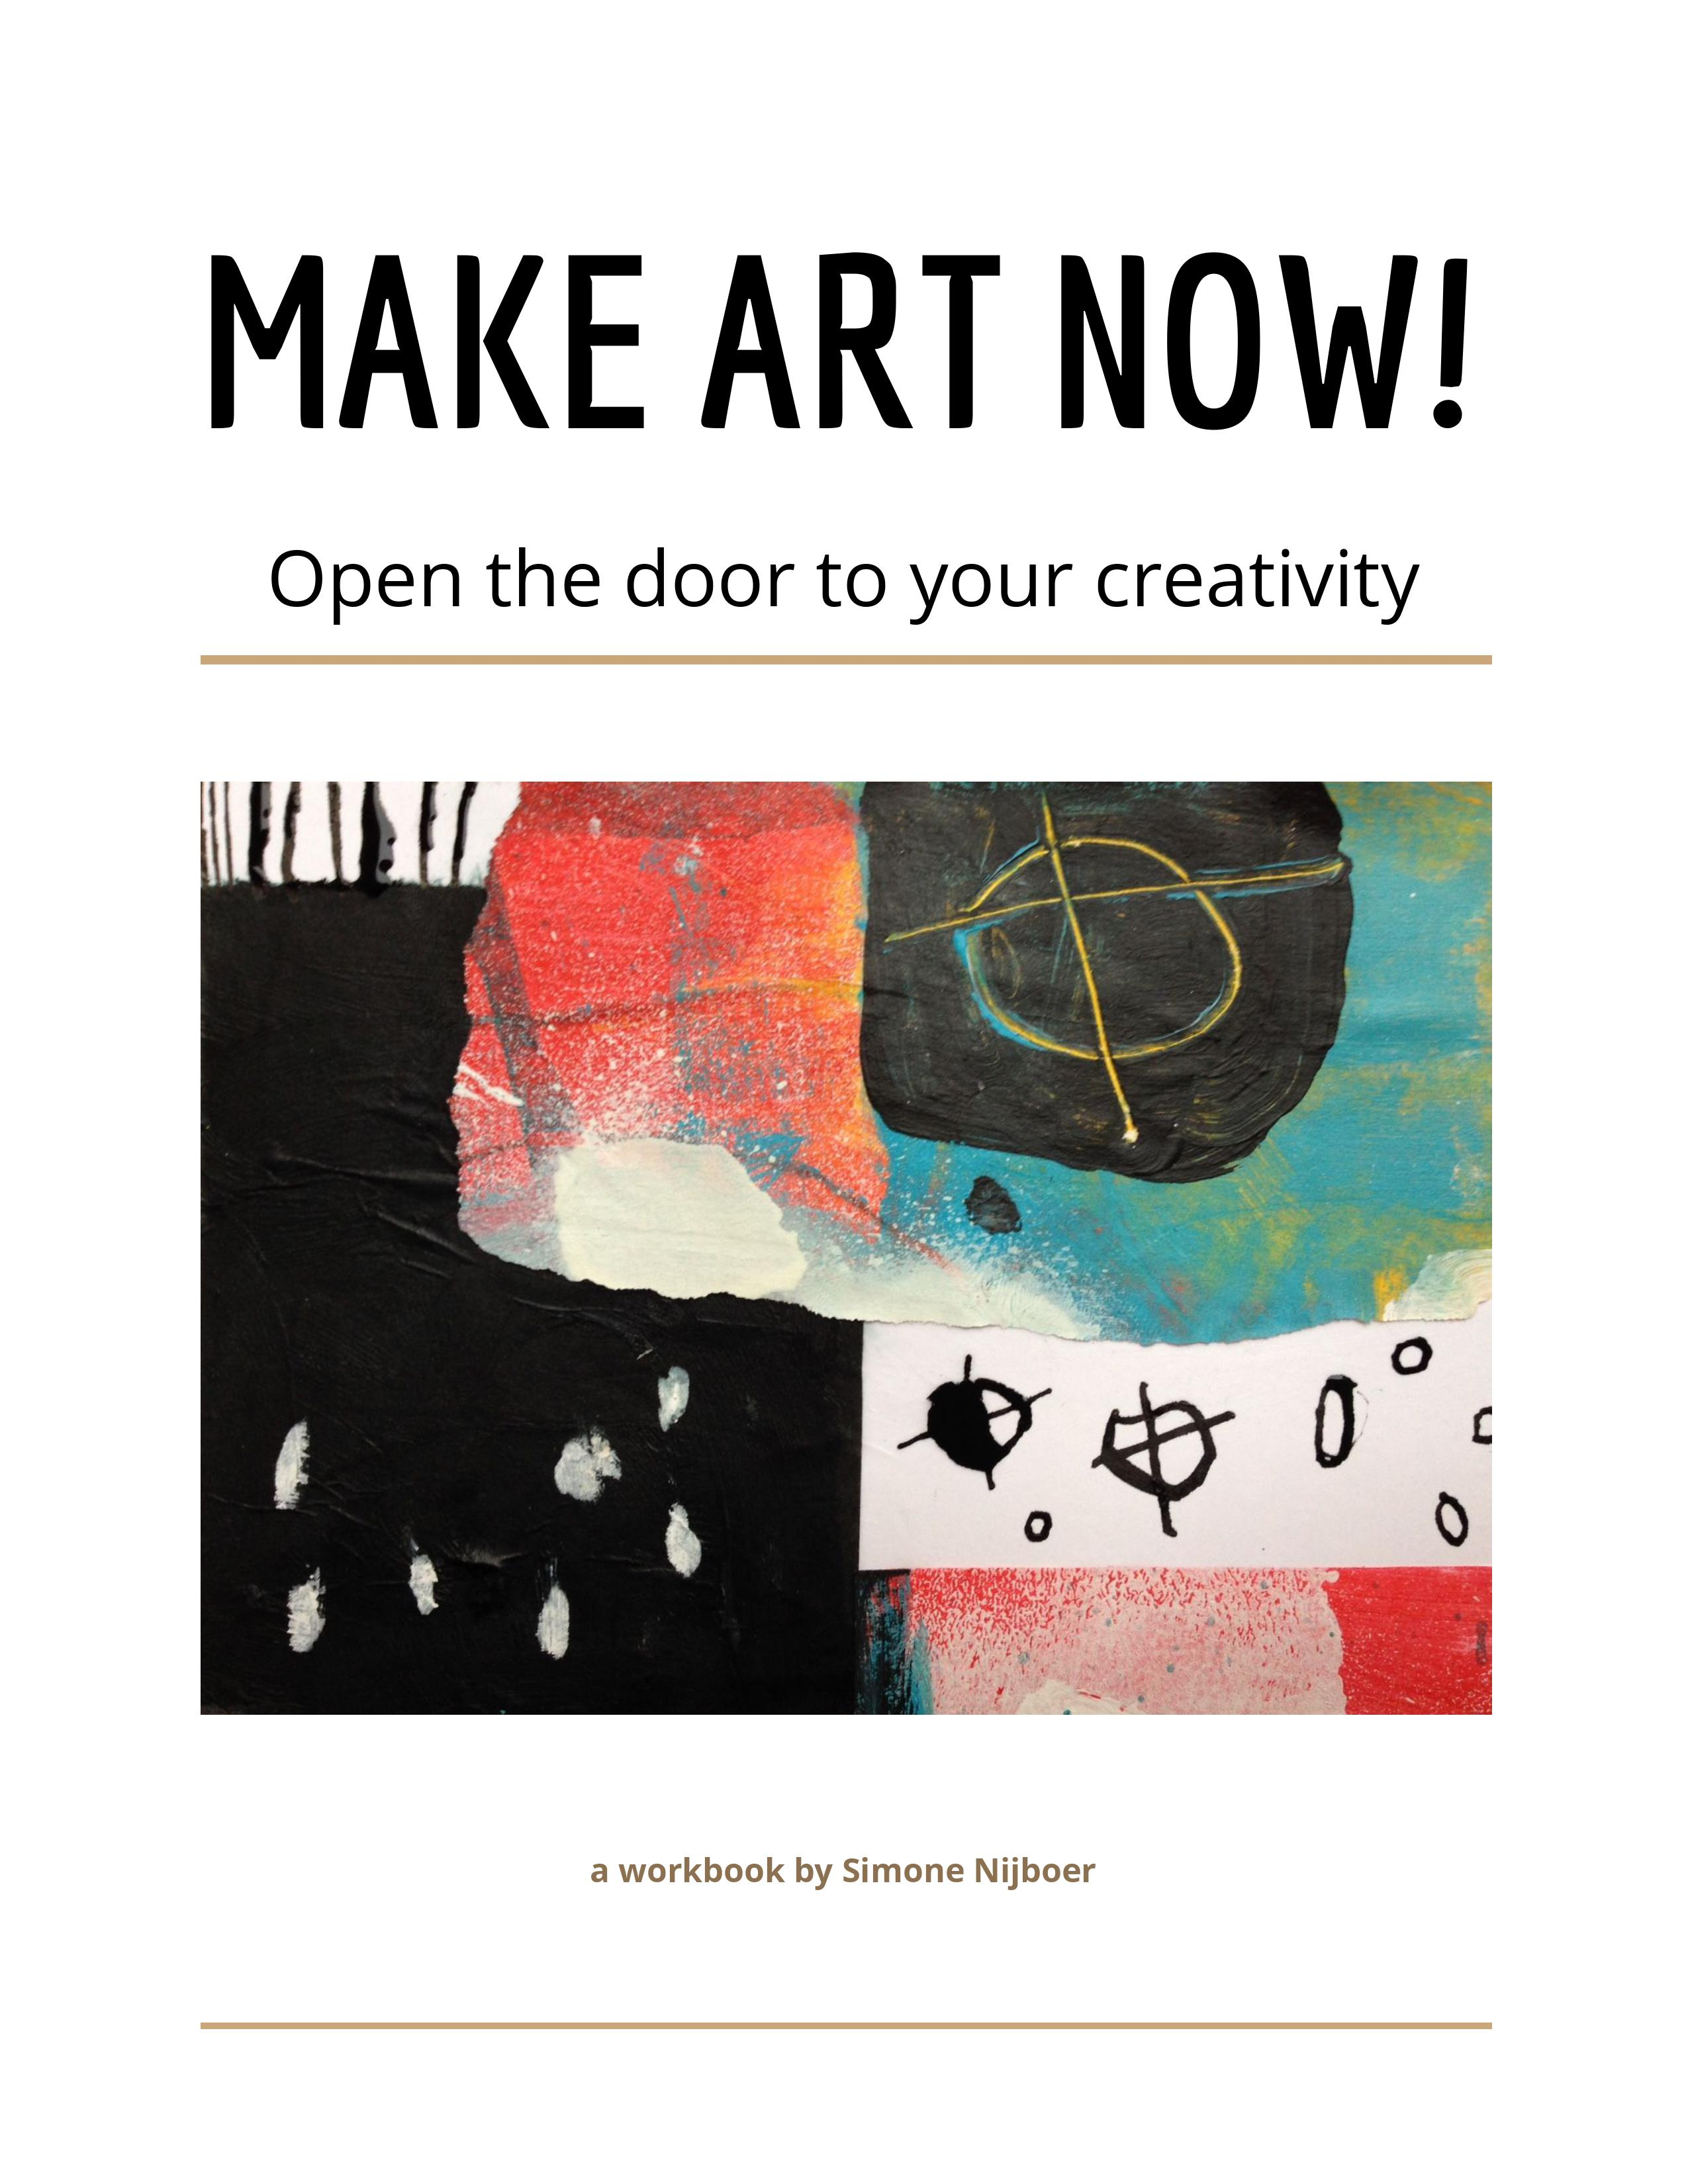 Free Workbook Make Art Now!